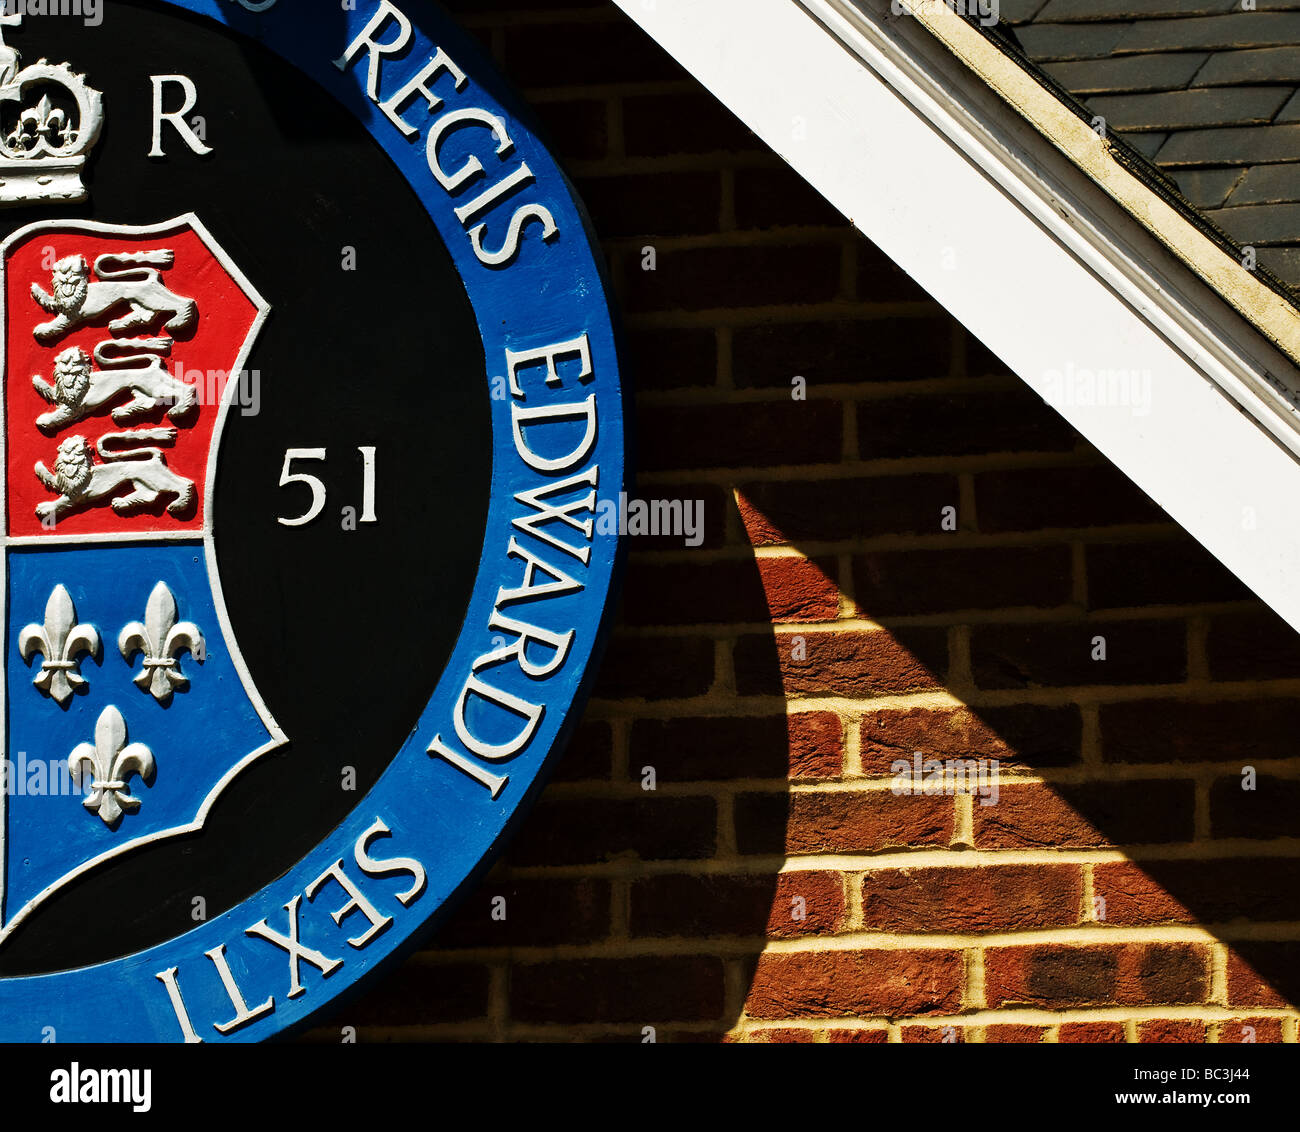 A section of the crest of King Edward VI Grammar School in Chelmsford. - Stock Image